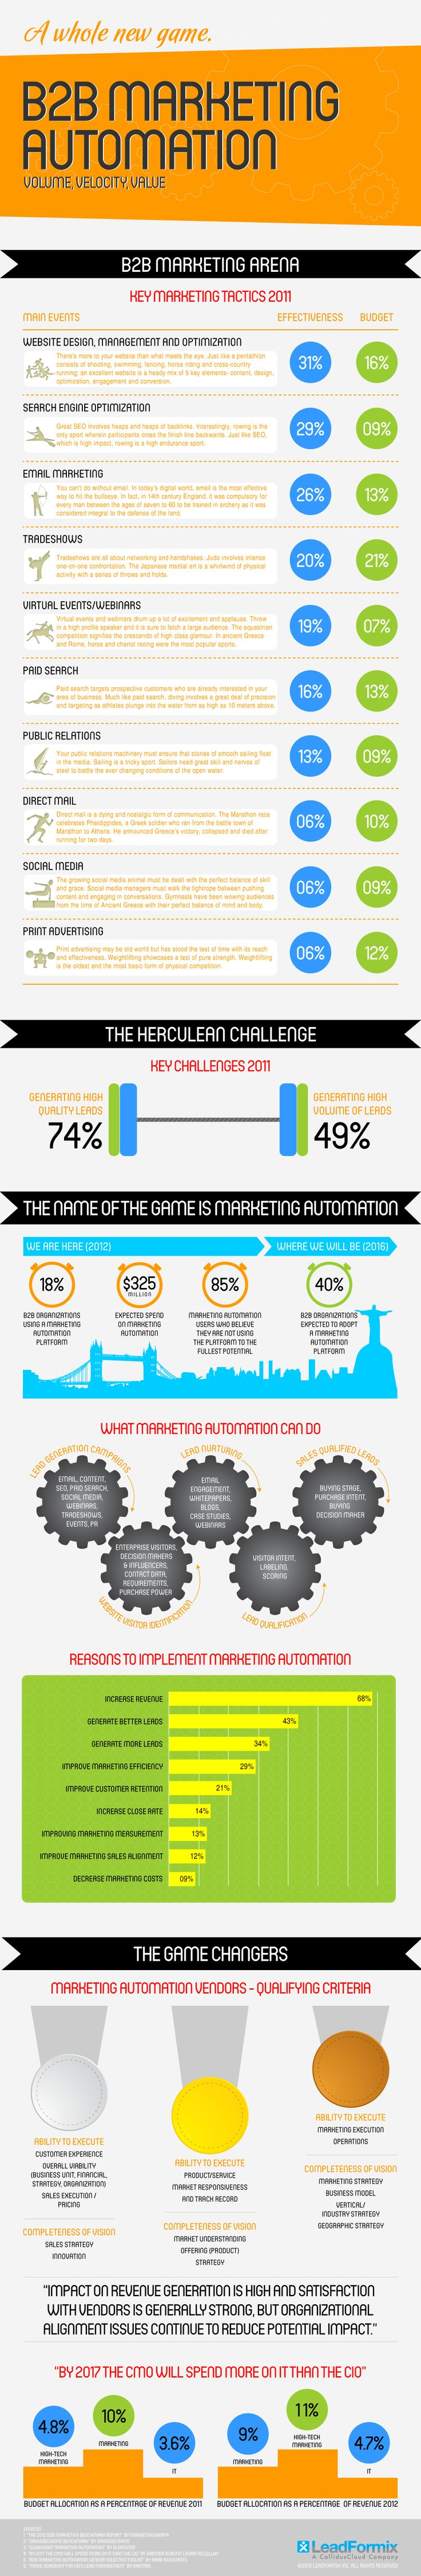 Infographic on B2B Marketing & Automation